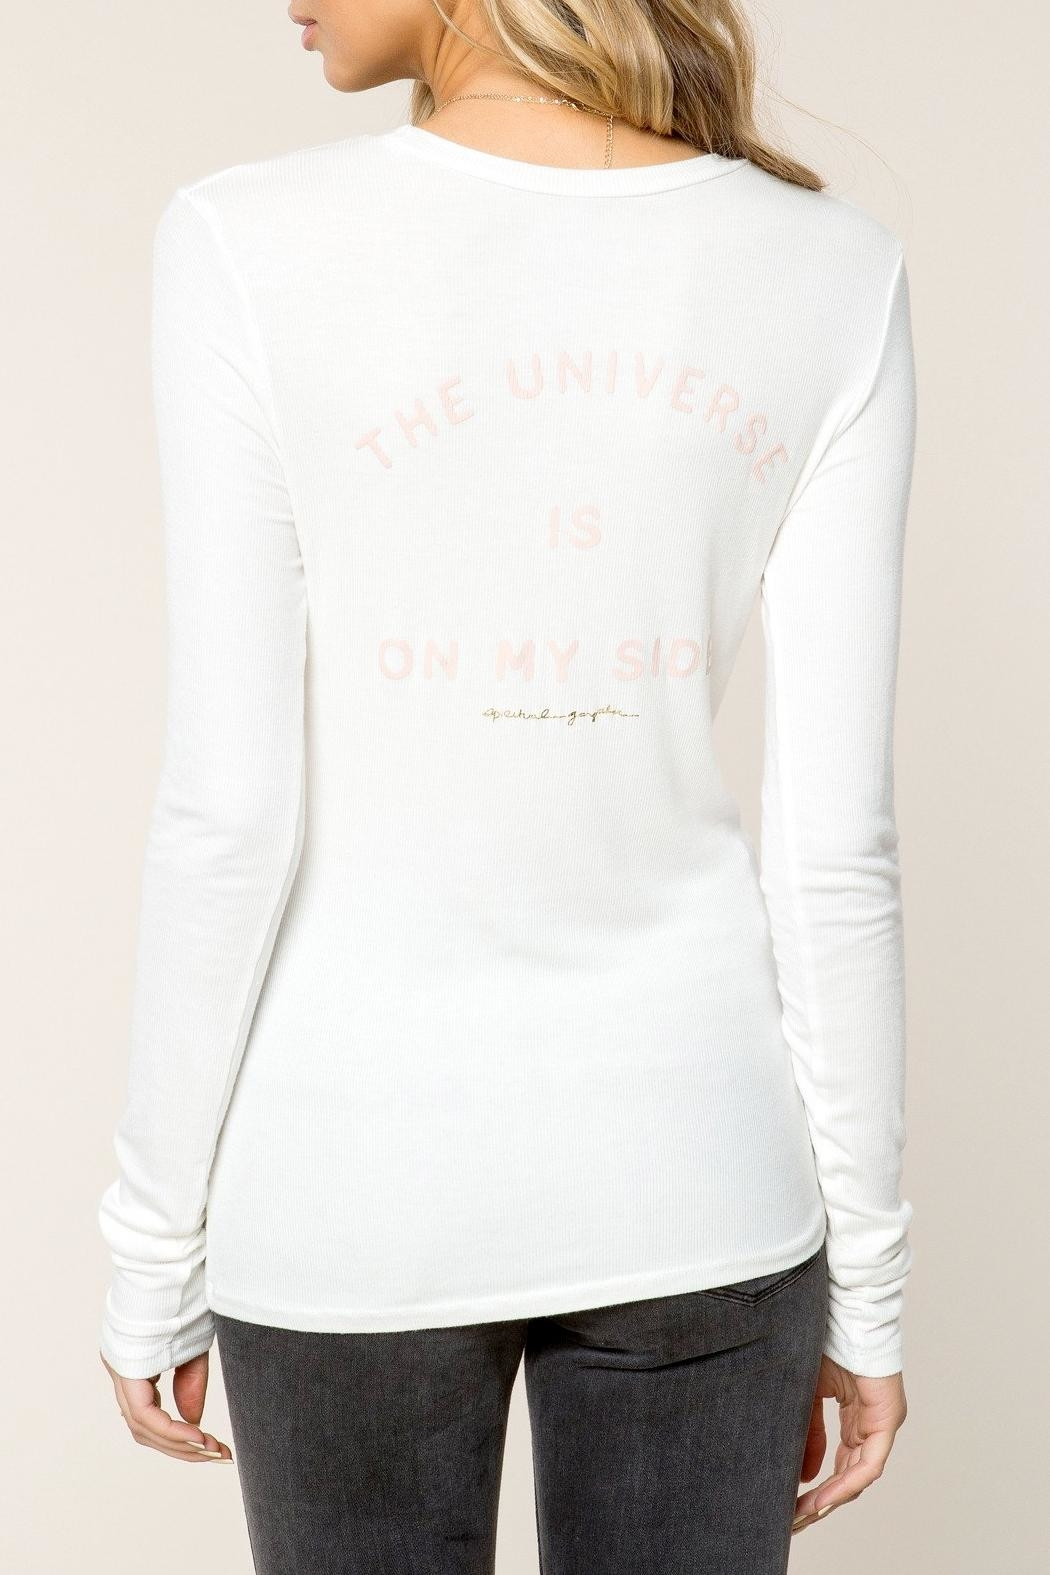 SPIRITUAL GANGSTER Universe Ribbed Tee - Front Full Image